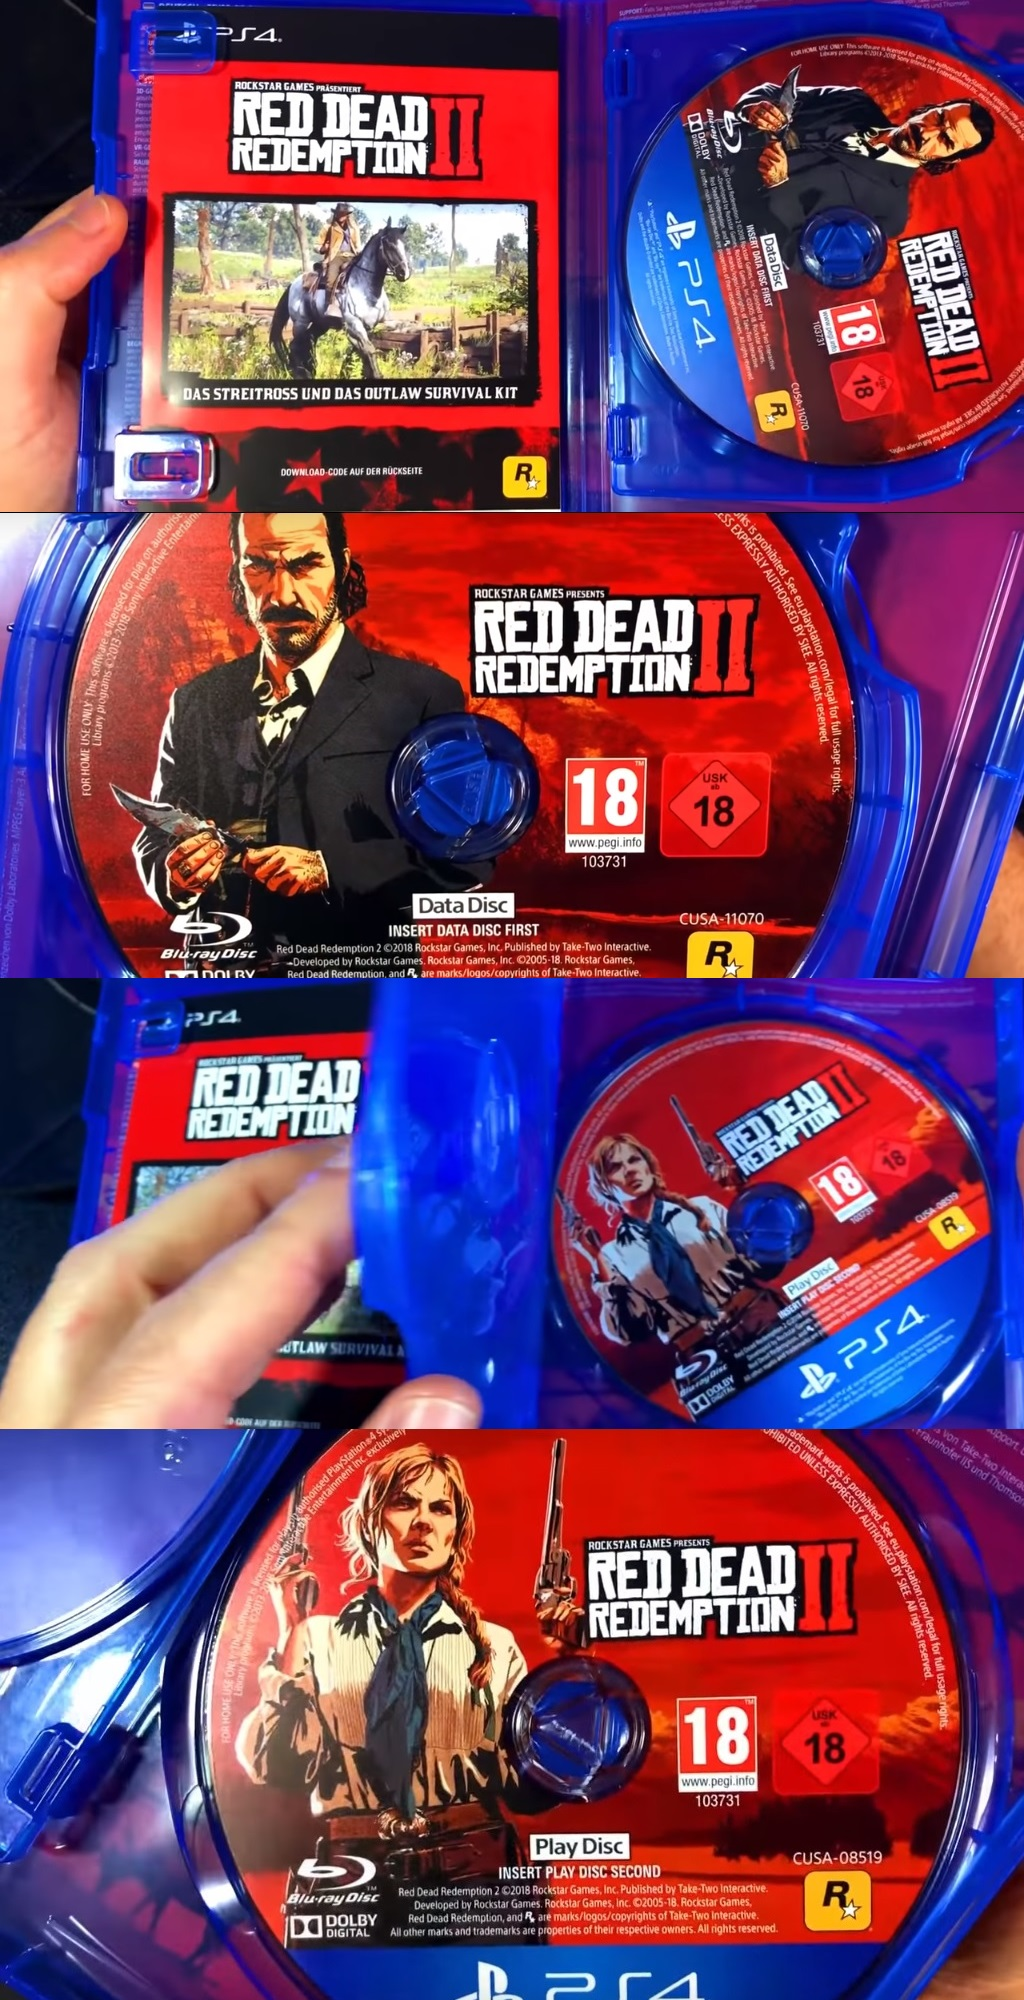 RDR2 Unboxing 111.jpg - Red Dead Redemption 2